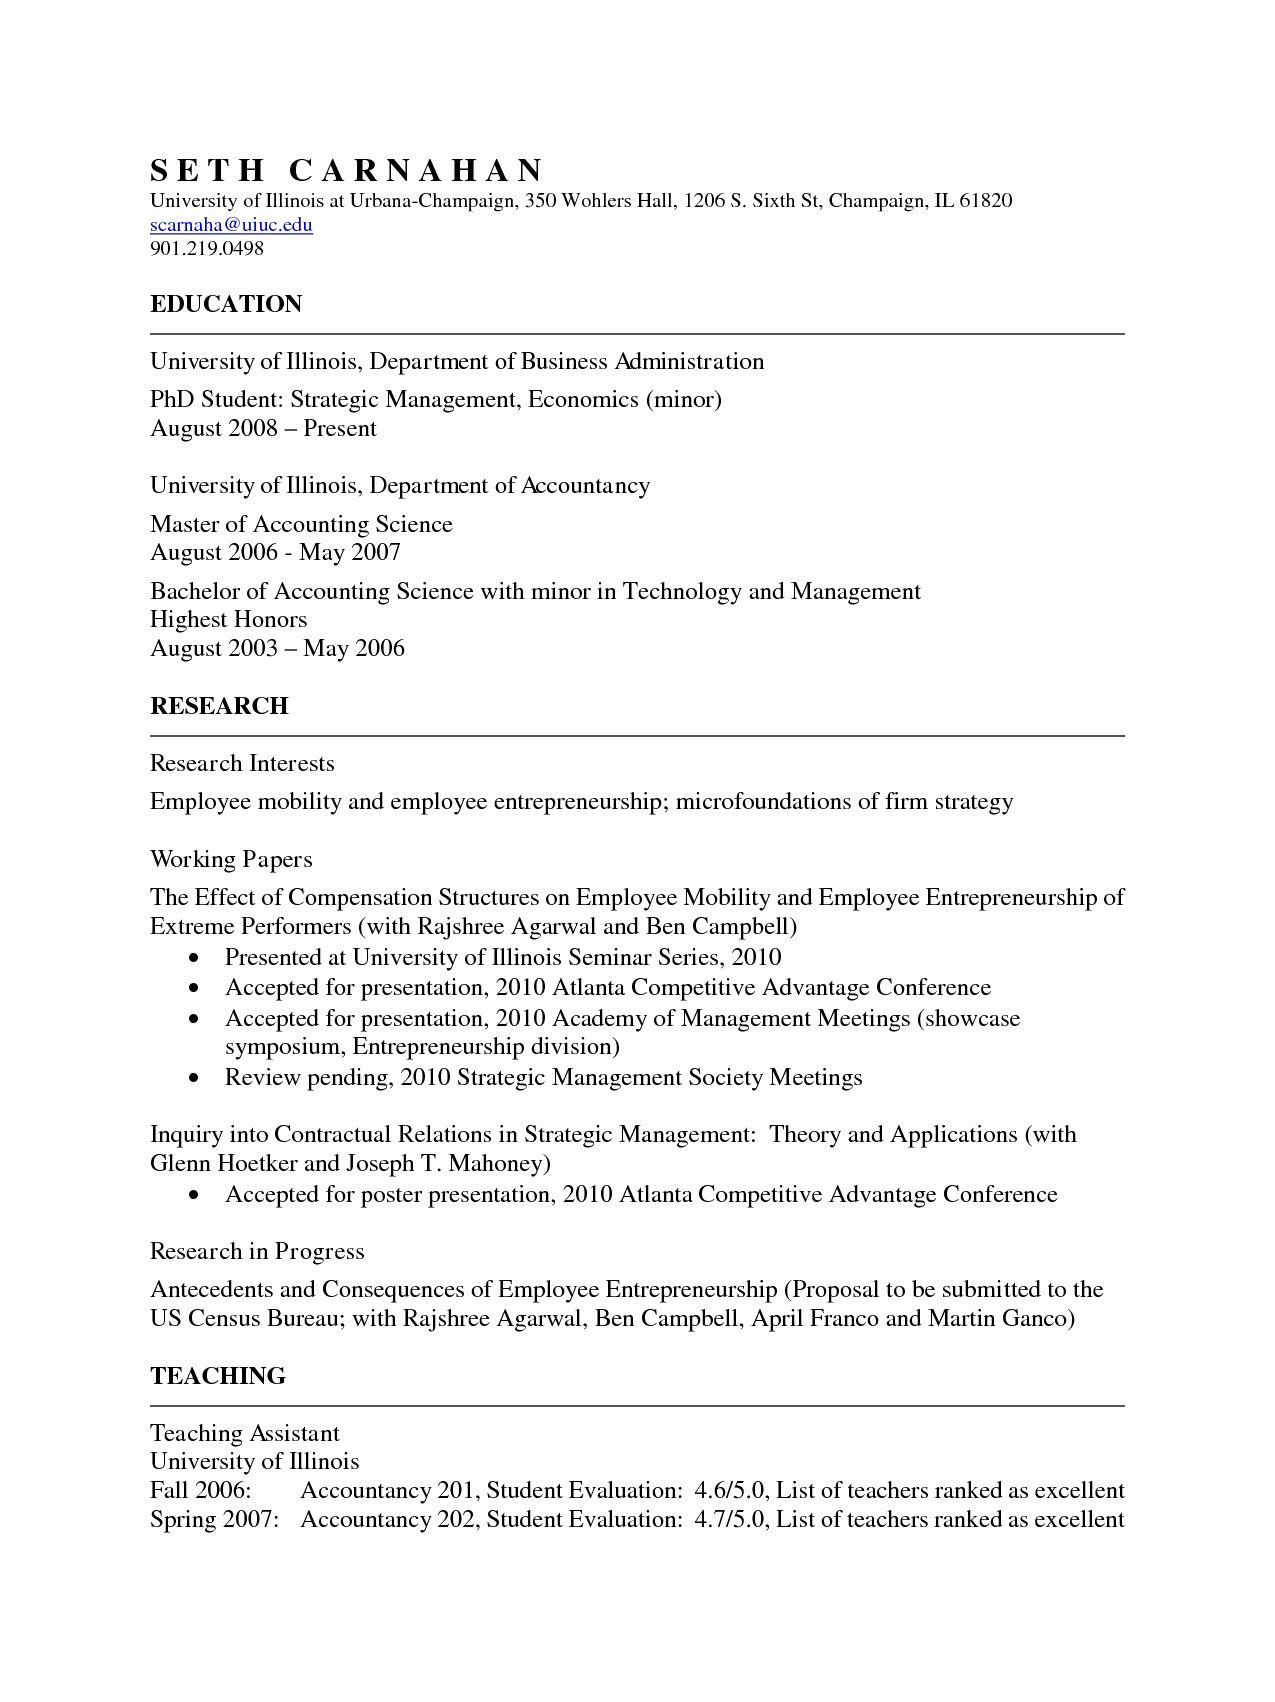 academic cv template word fresh format for australian accounting manager medical office administration resume objective graphic designer sample